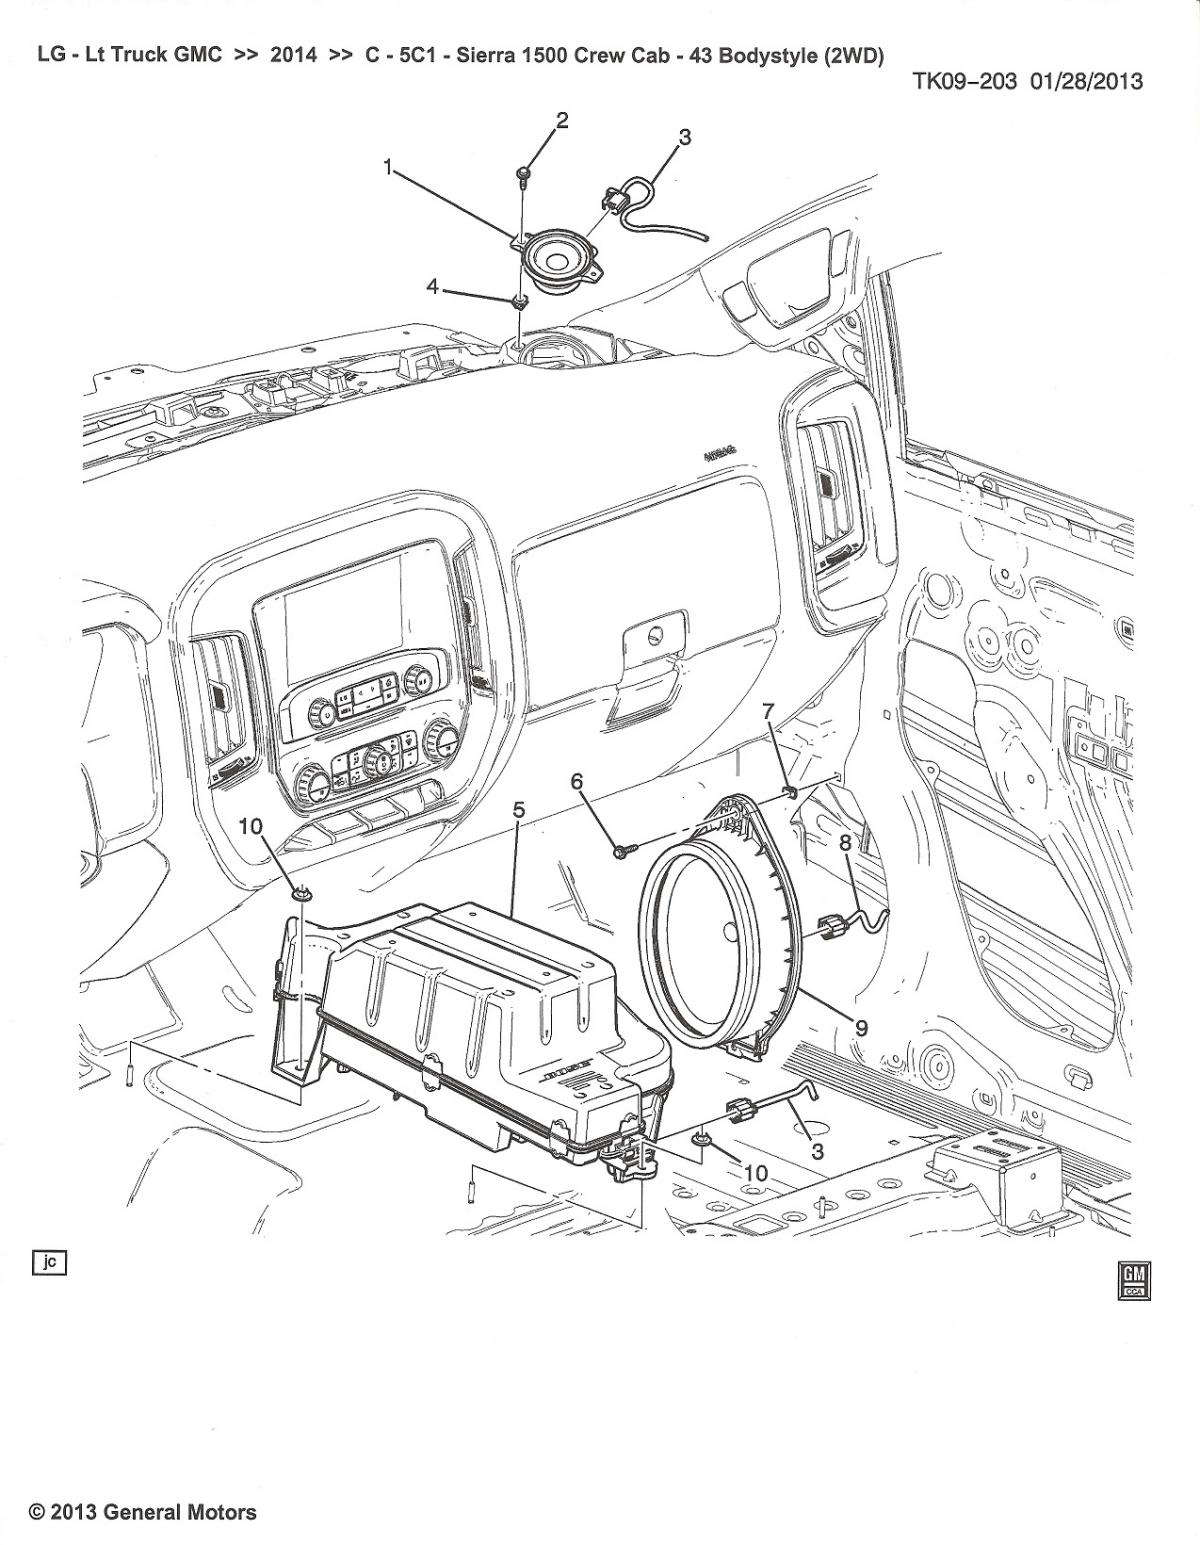 Interior Hhr Stereo Wiring Diagram